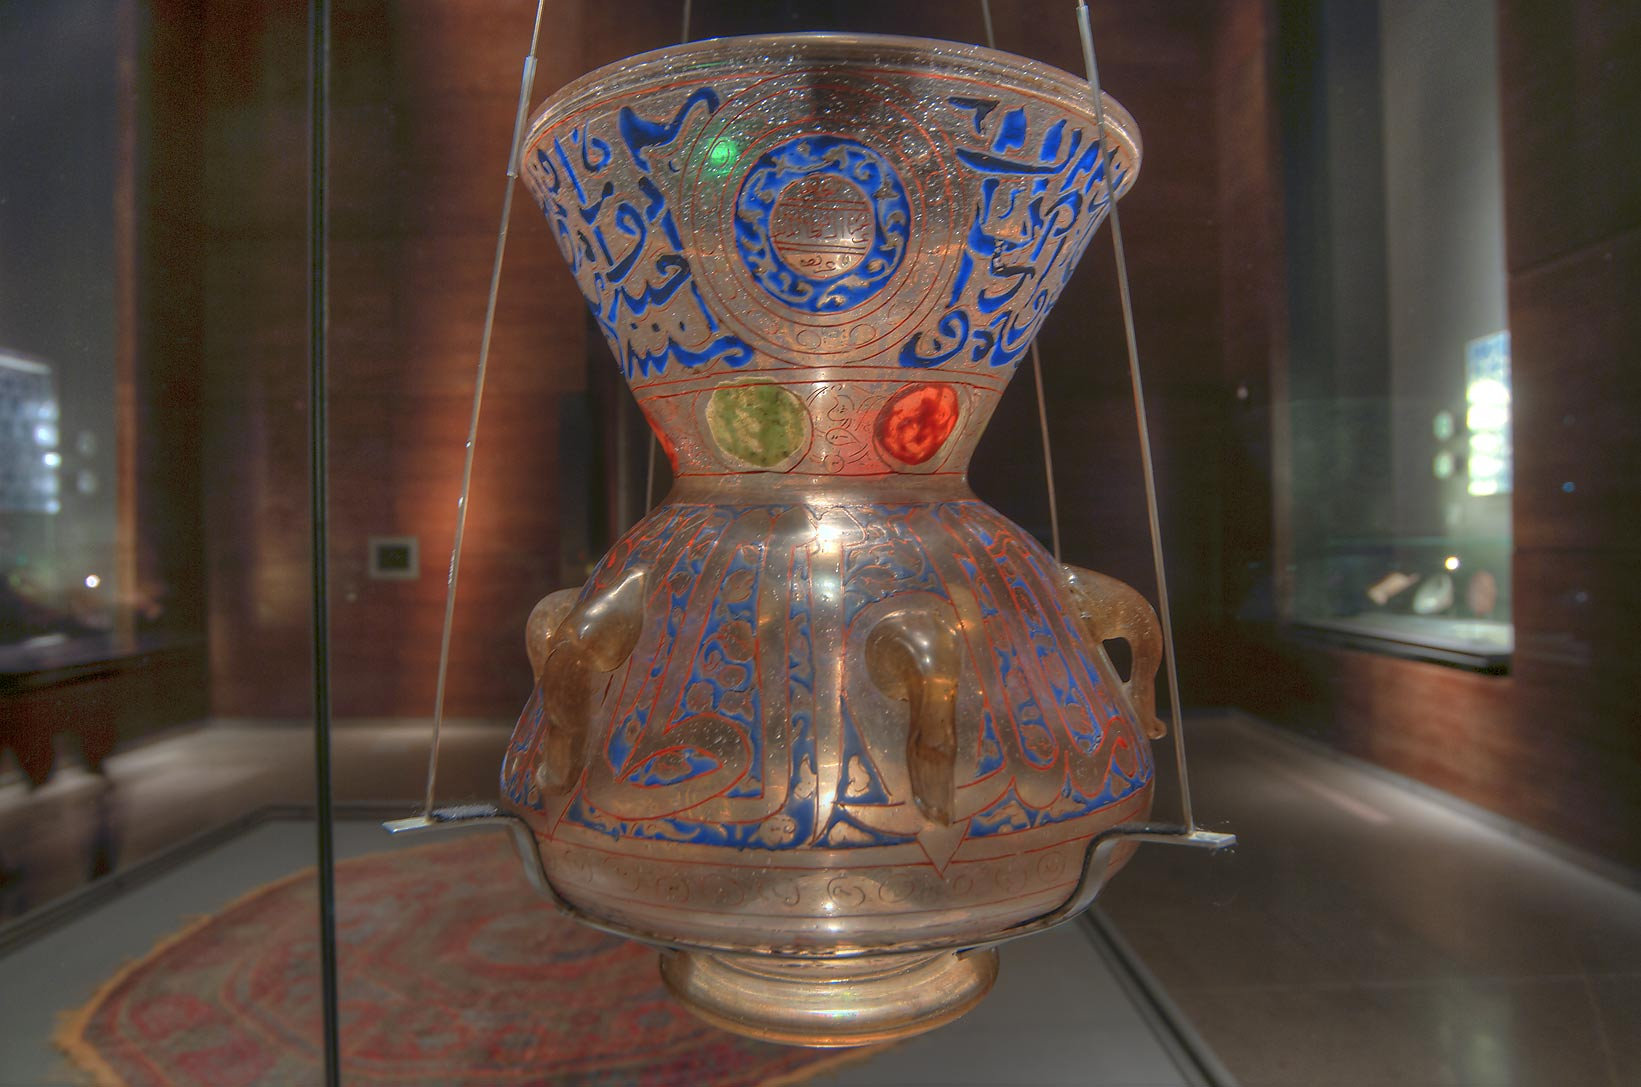 Mosque lamp (glass, vitreous enamel) on display in Museum of Islamic Art. Doha, Qatar